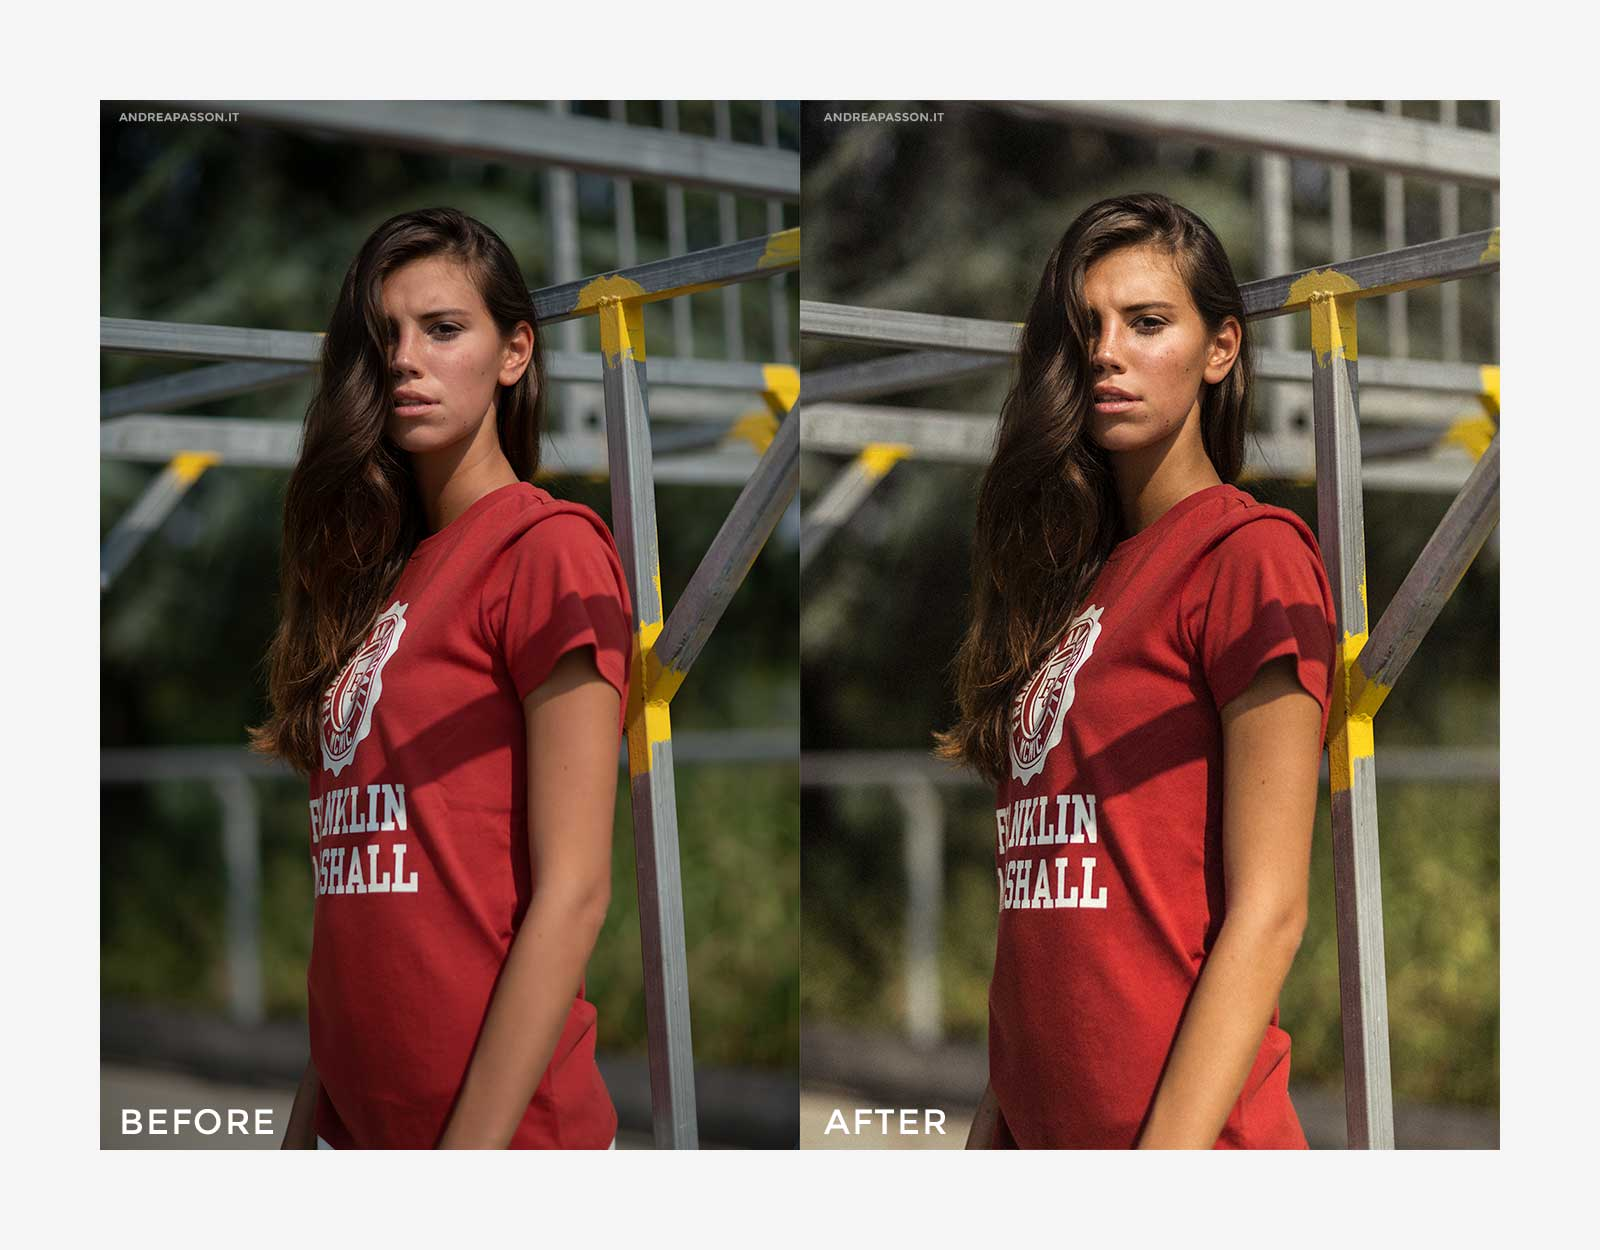 Before & After - Post Produzione Fotografica Professionale a Treviso - Franklin & Marshall